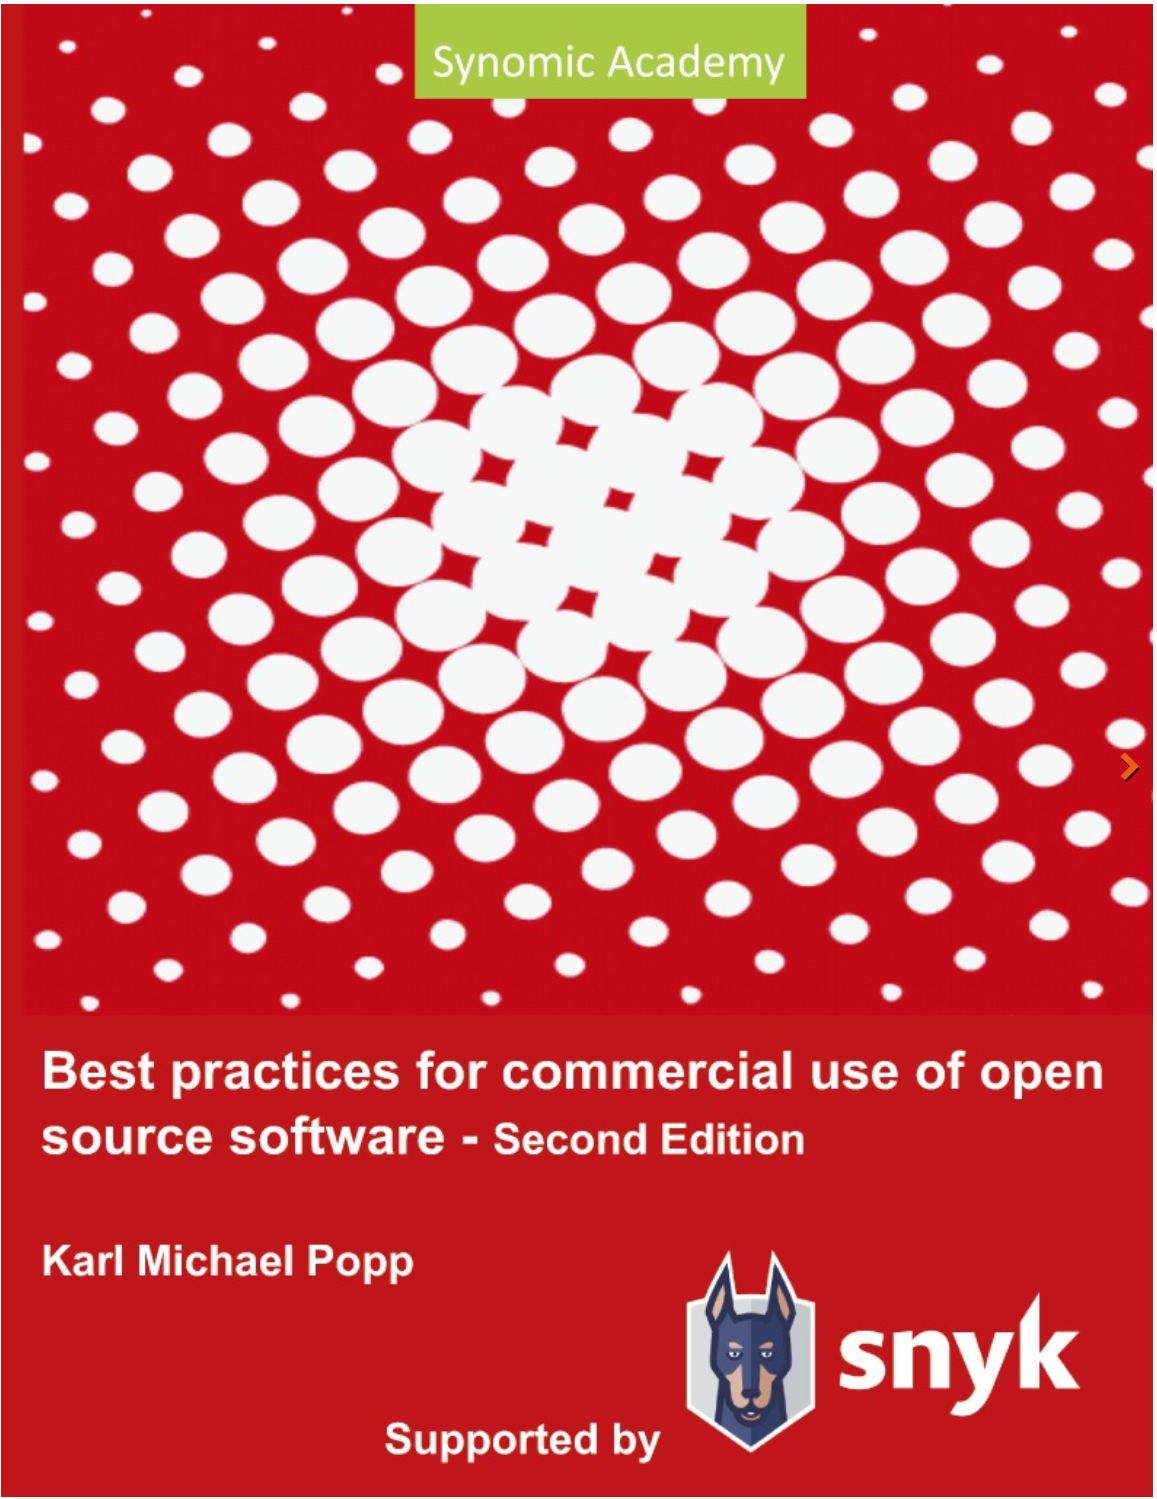 Best practices for commercial use of open source software